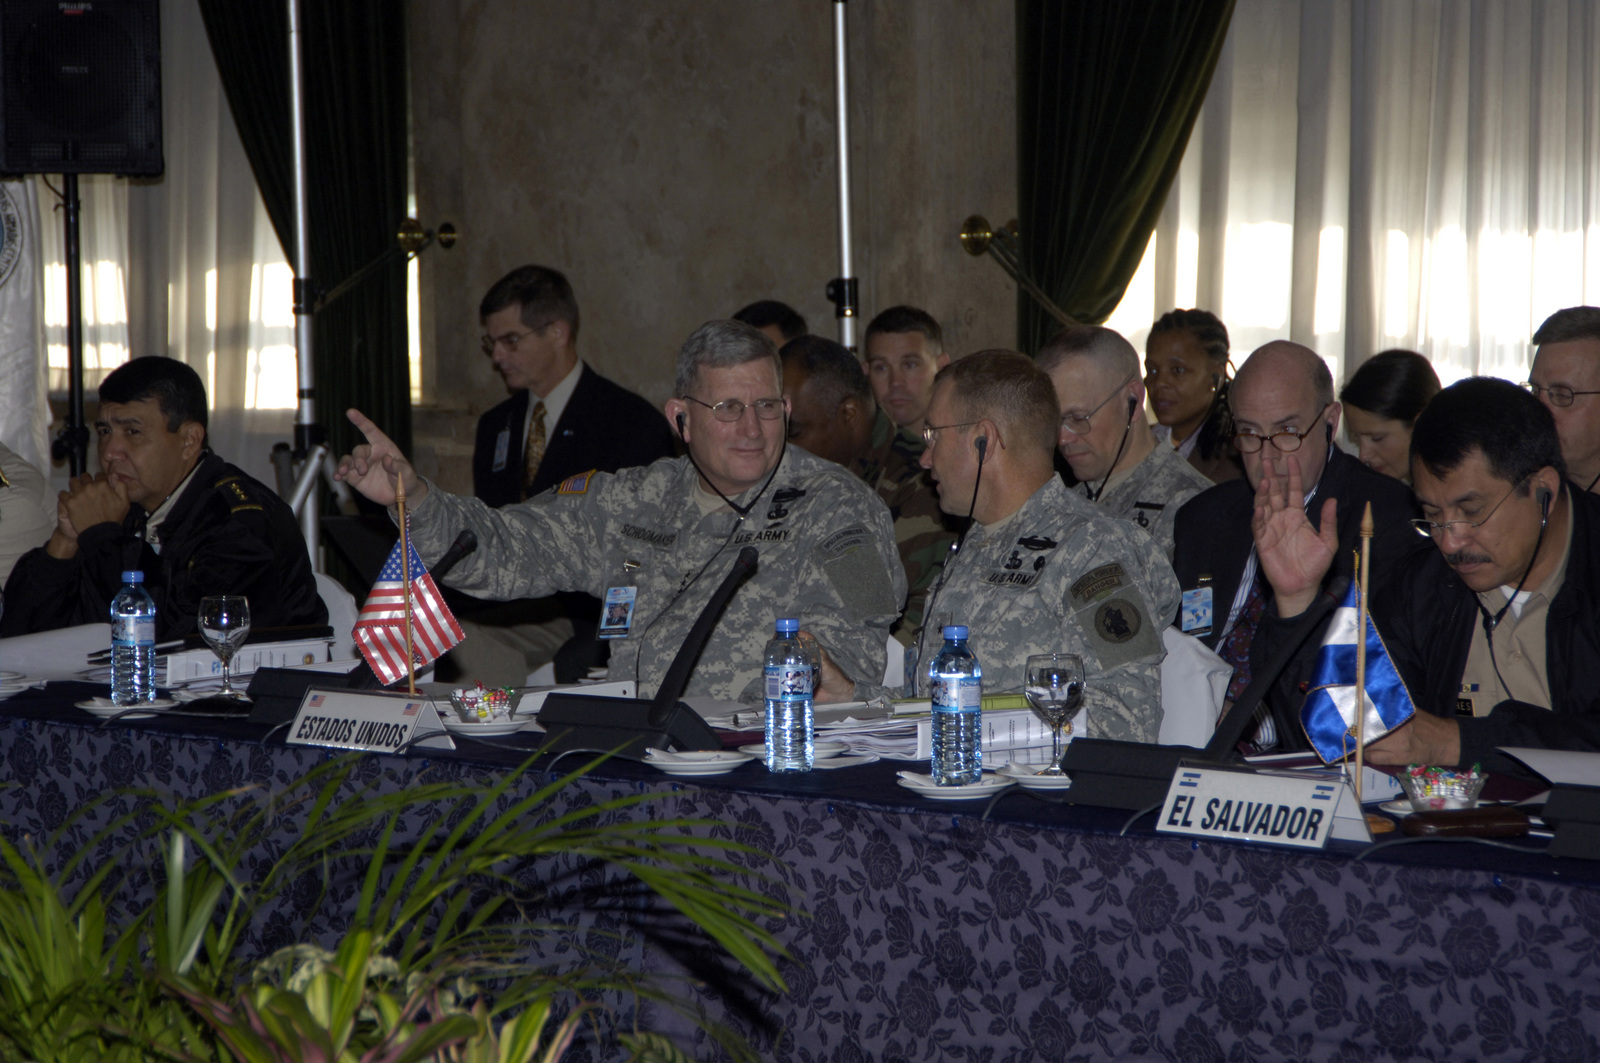 "GEN. Peter A. Schoomaker, CHIEF of STAFF, U.S. Army, center left, raises his hand in a""yea""vote while talking with U.S. Army South Commanding General Brig. GEN. Purl K. Keen, right, during the Conference of American Armies Commander's Conference in Buenos Aires, Argentina on Nov. 3, 2005. (U.S. Army photo by Kaye Richey) (Released)"